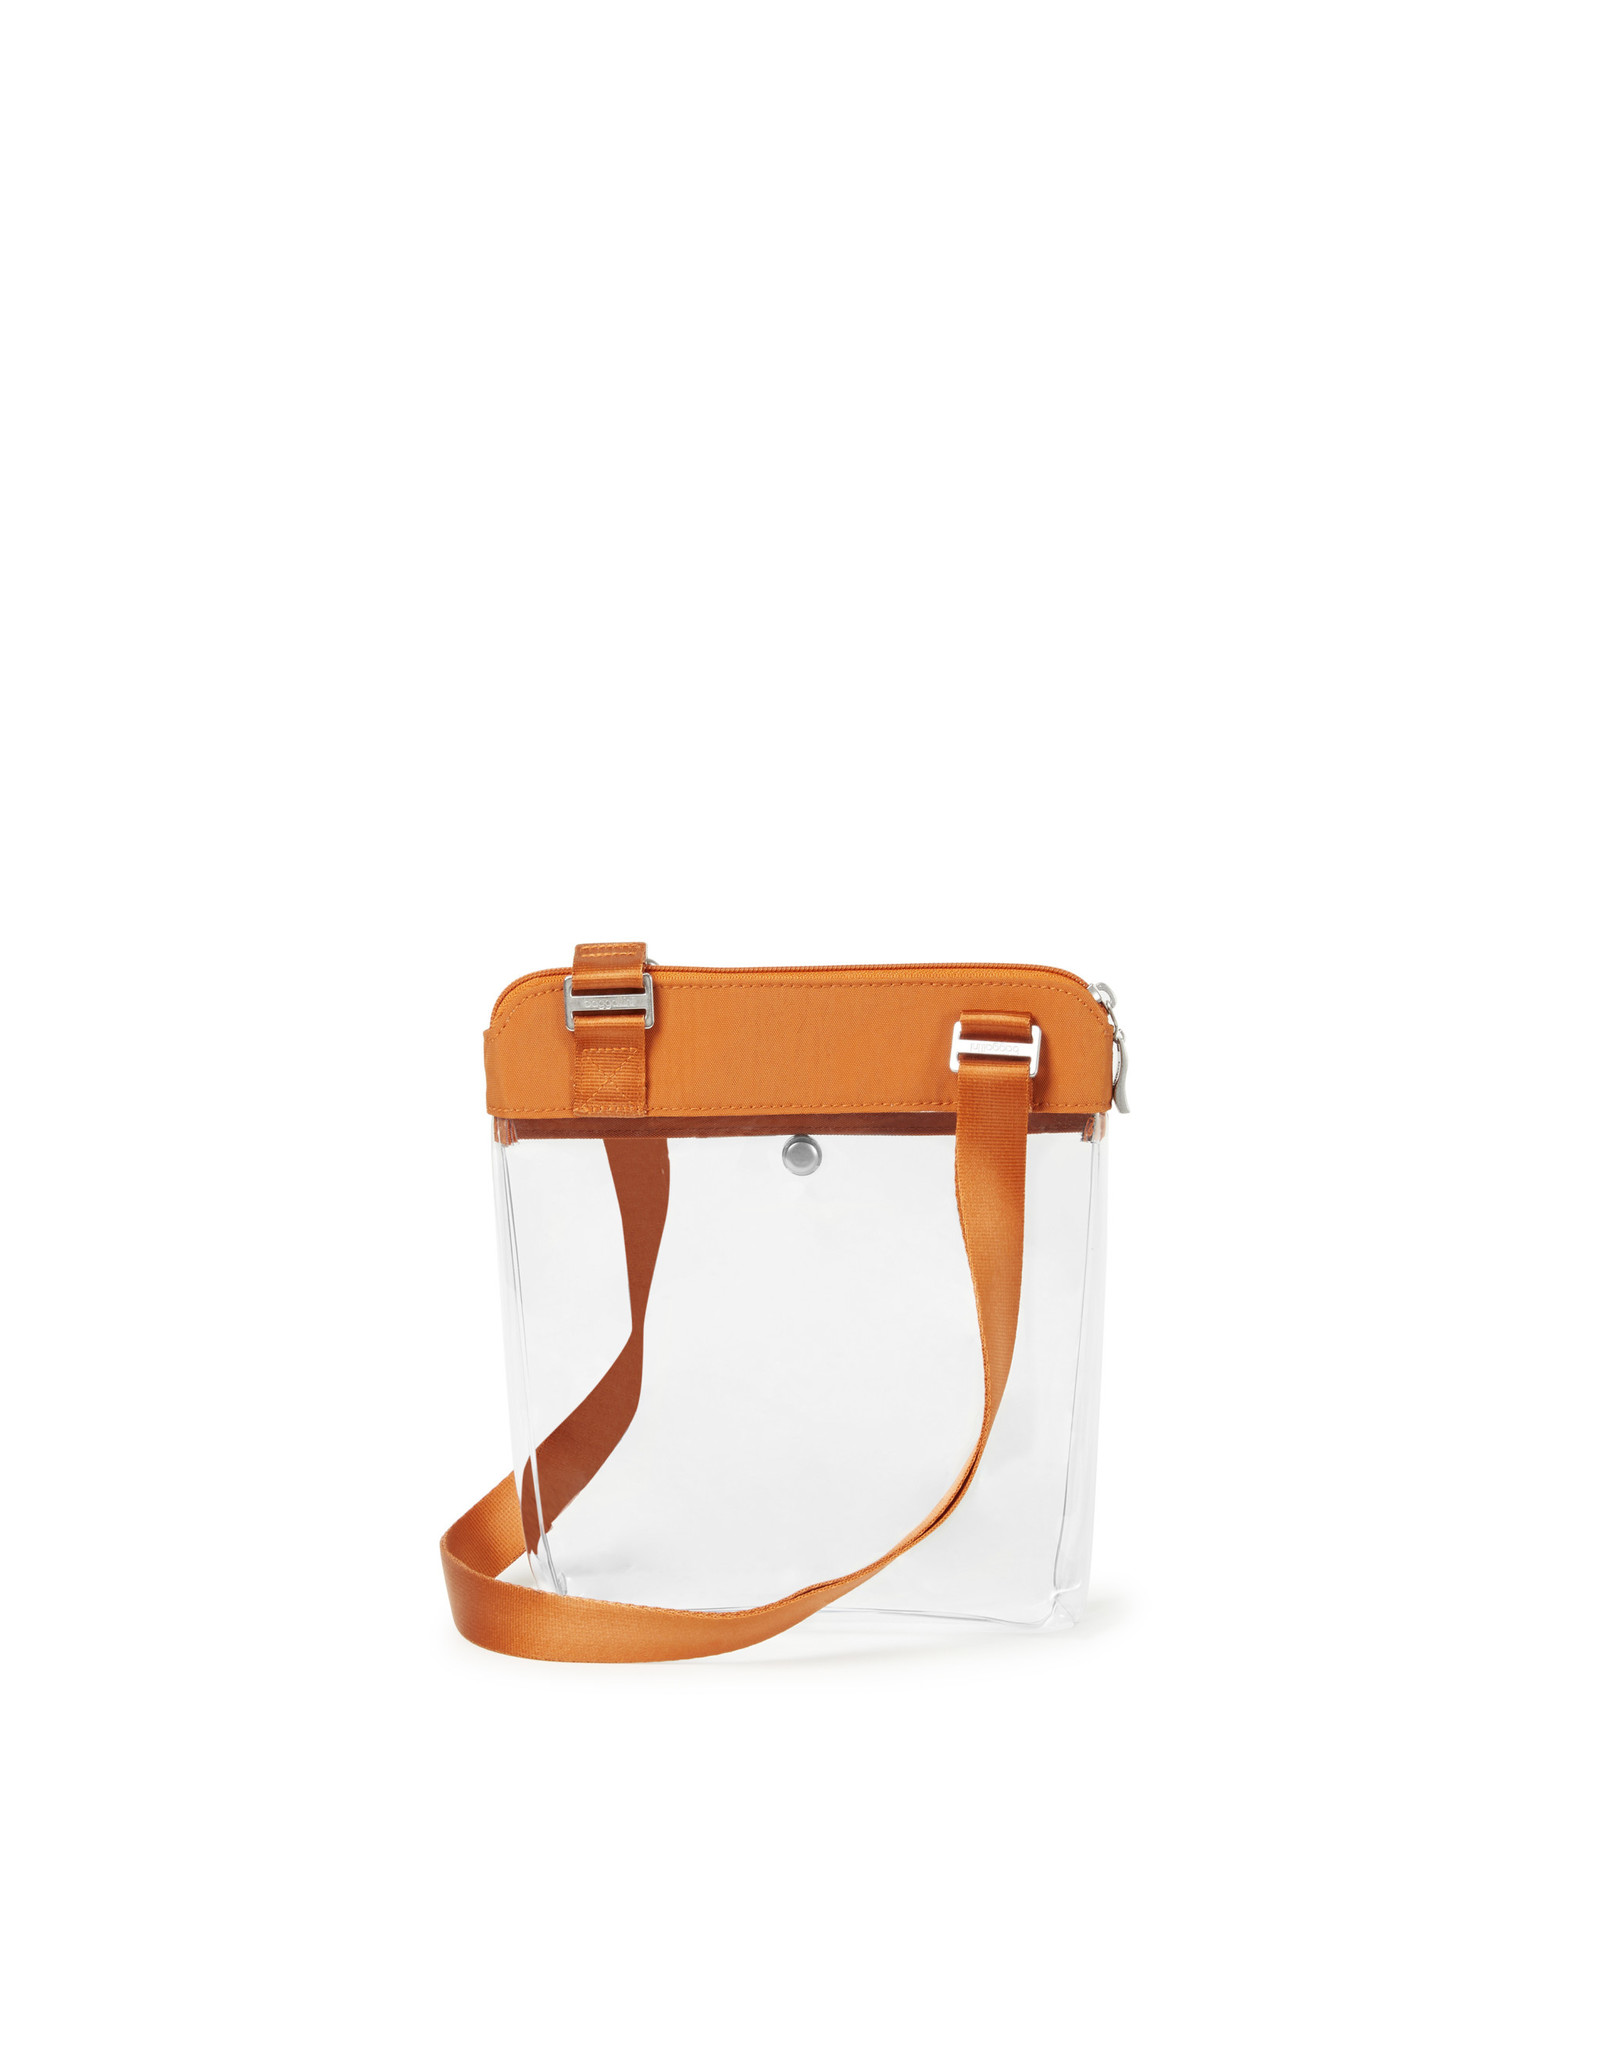 Baggallini Clear Event Compliant Pocket Crossbody - Orange